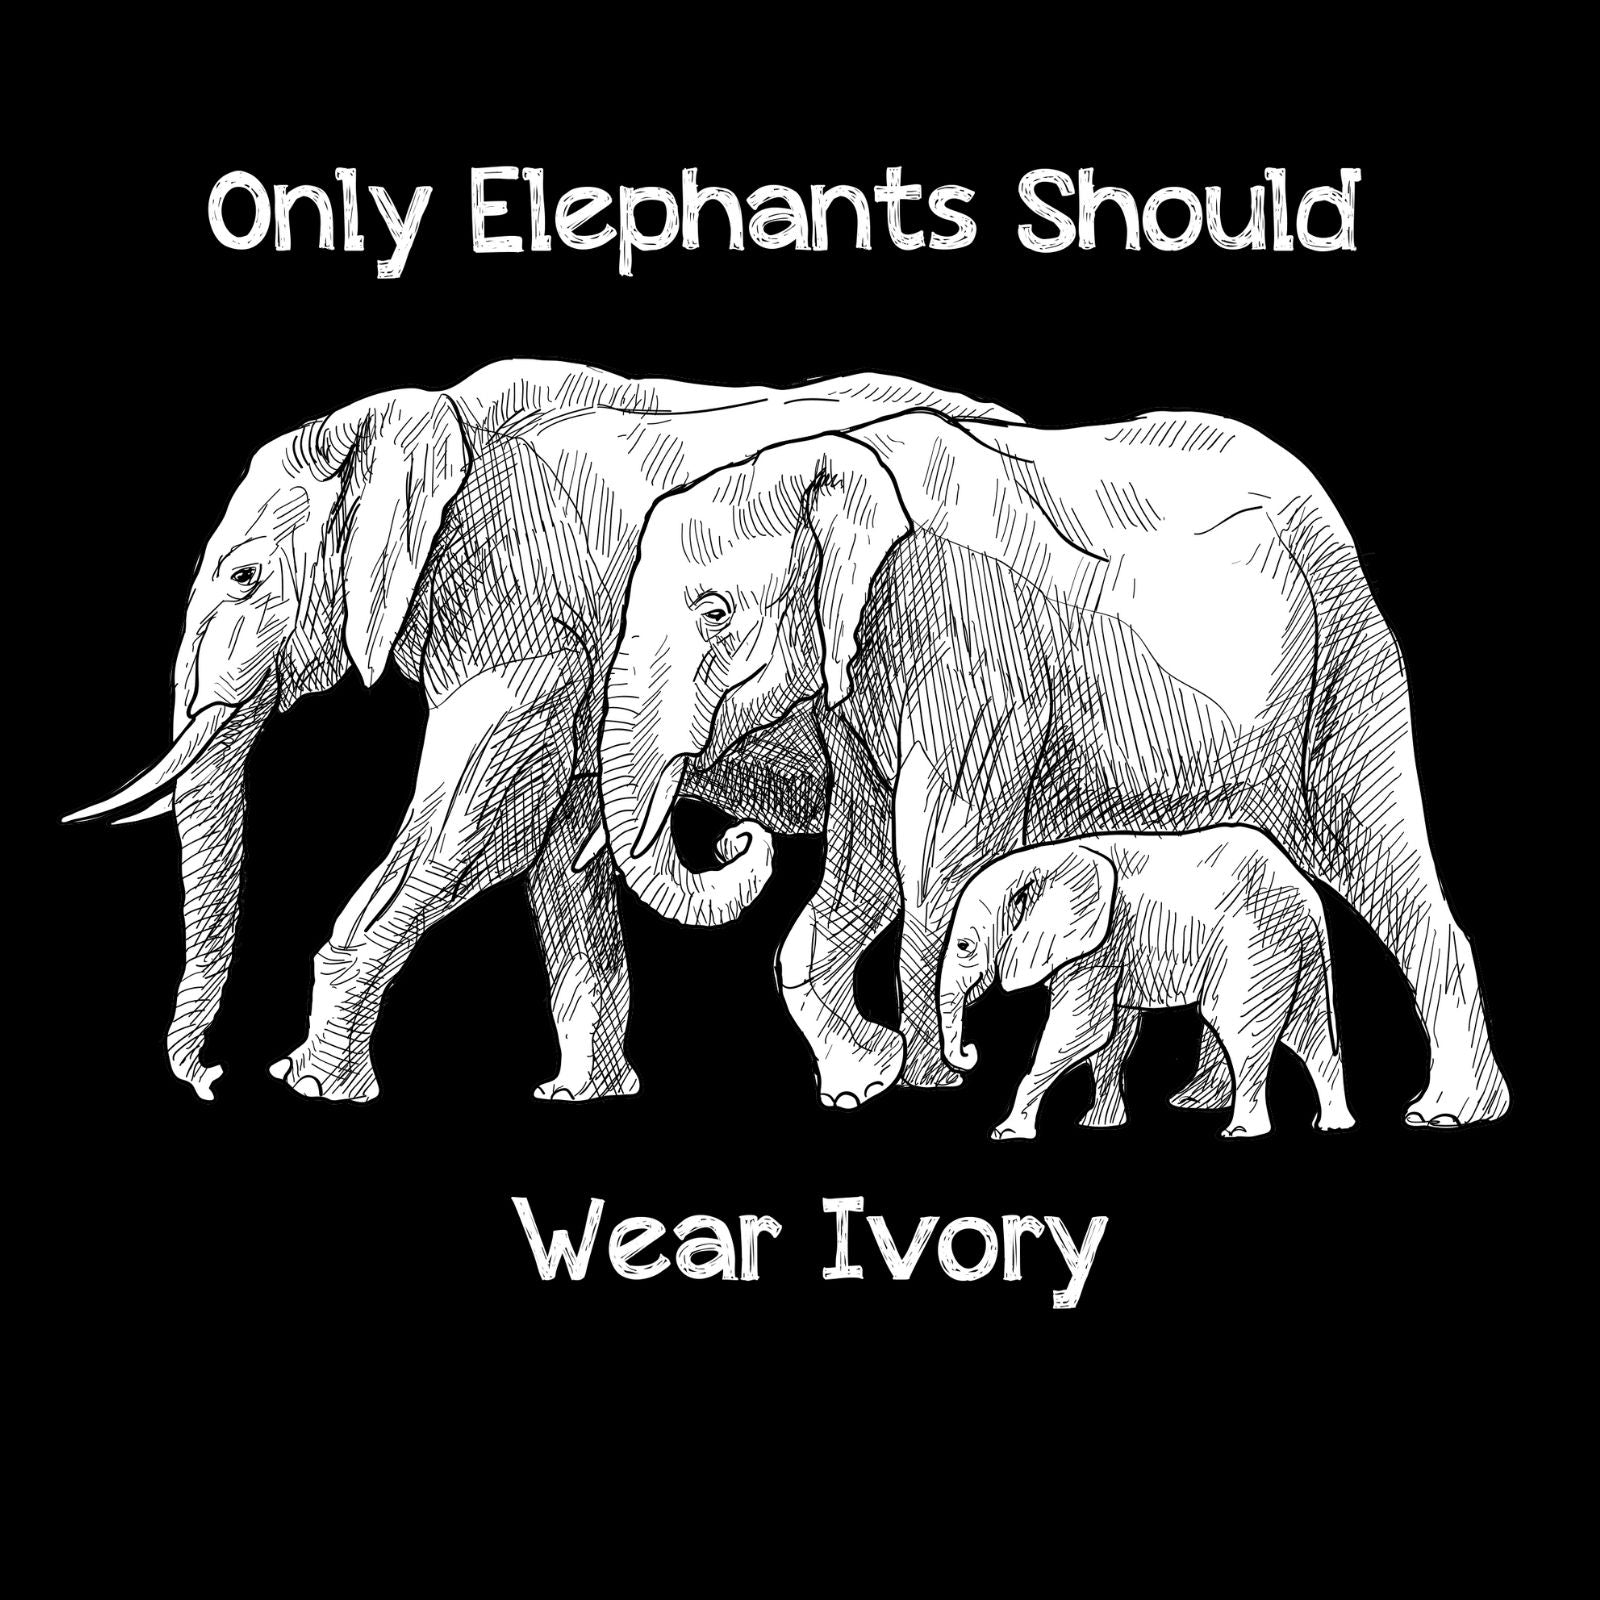 Only Elephants Should Wear Ivory - Bastard Graphics